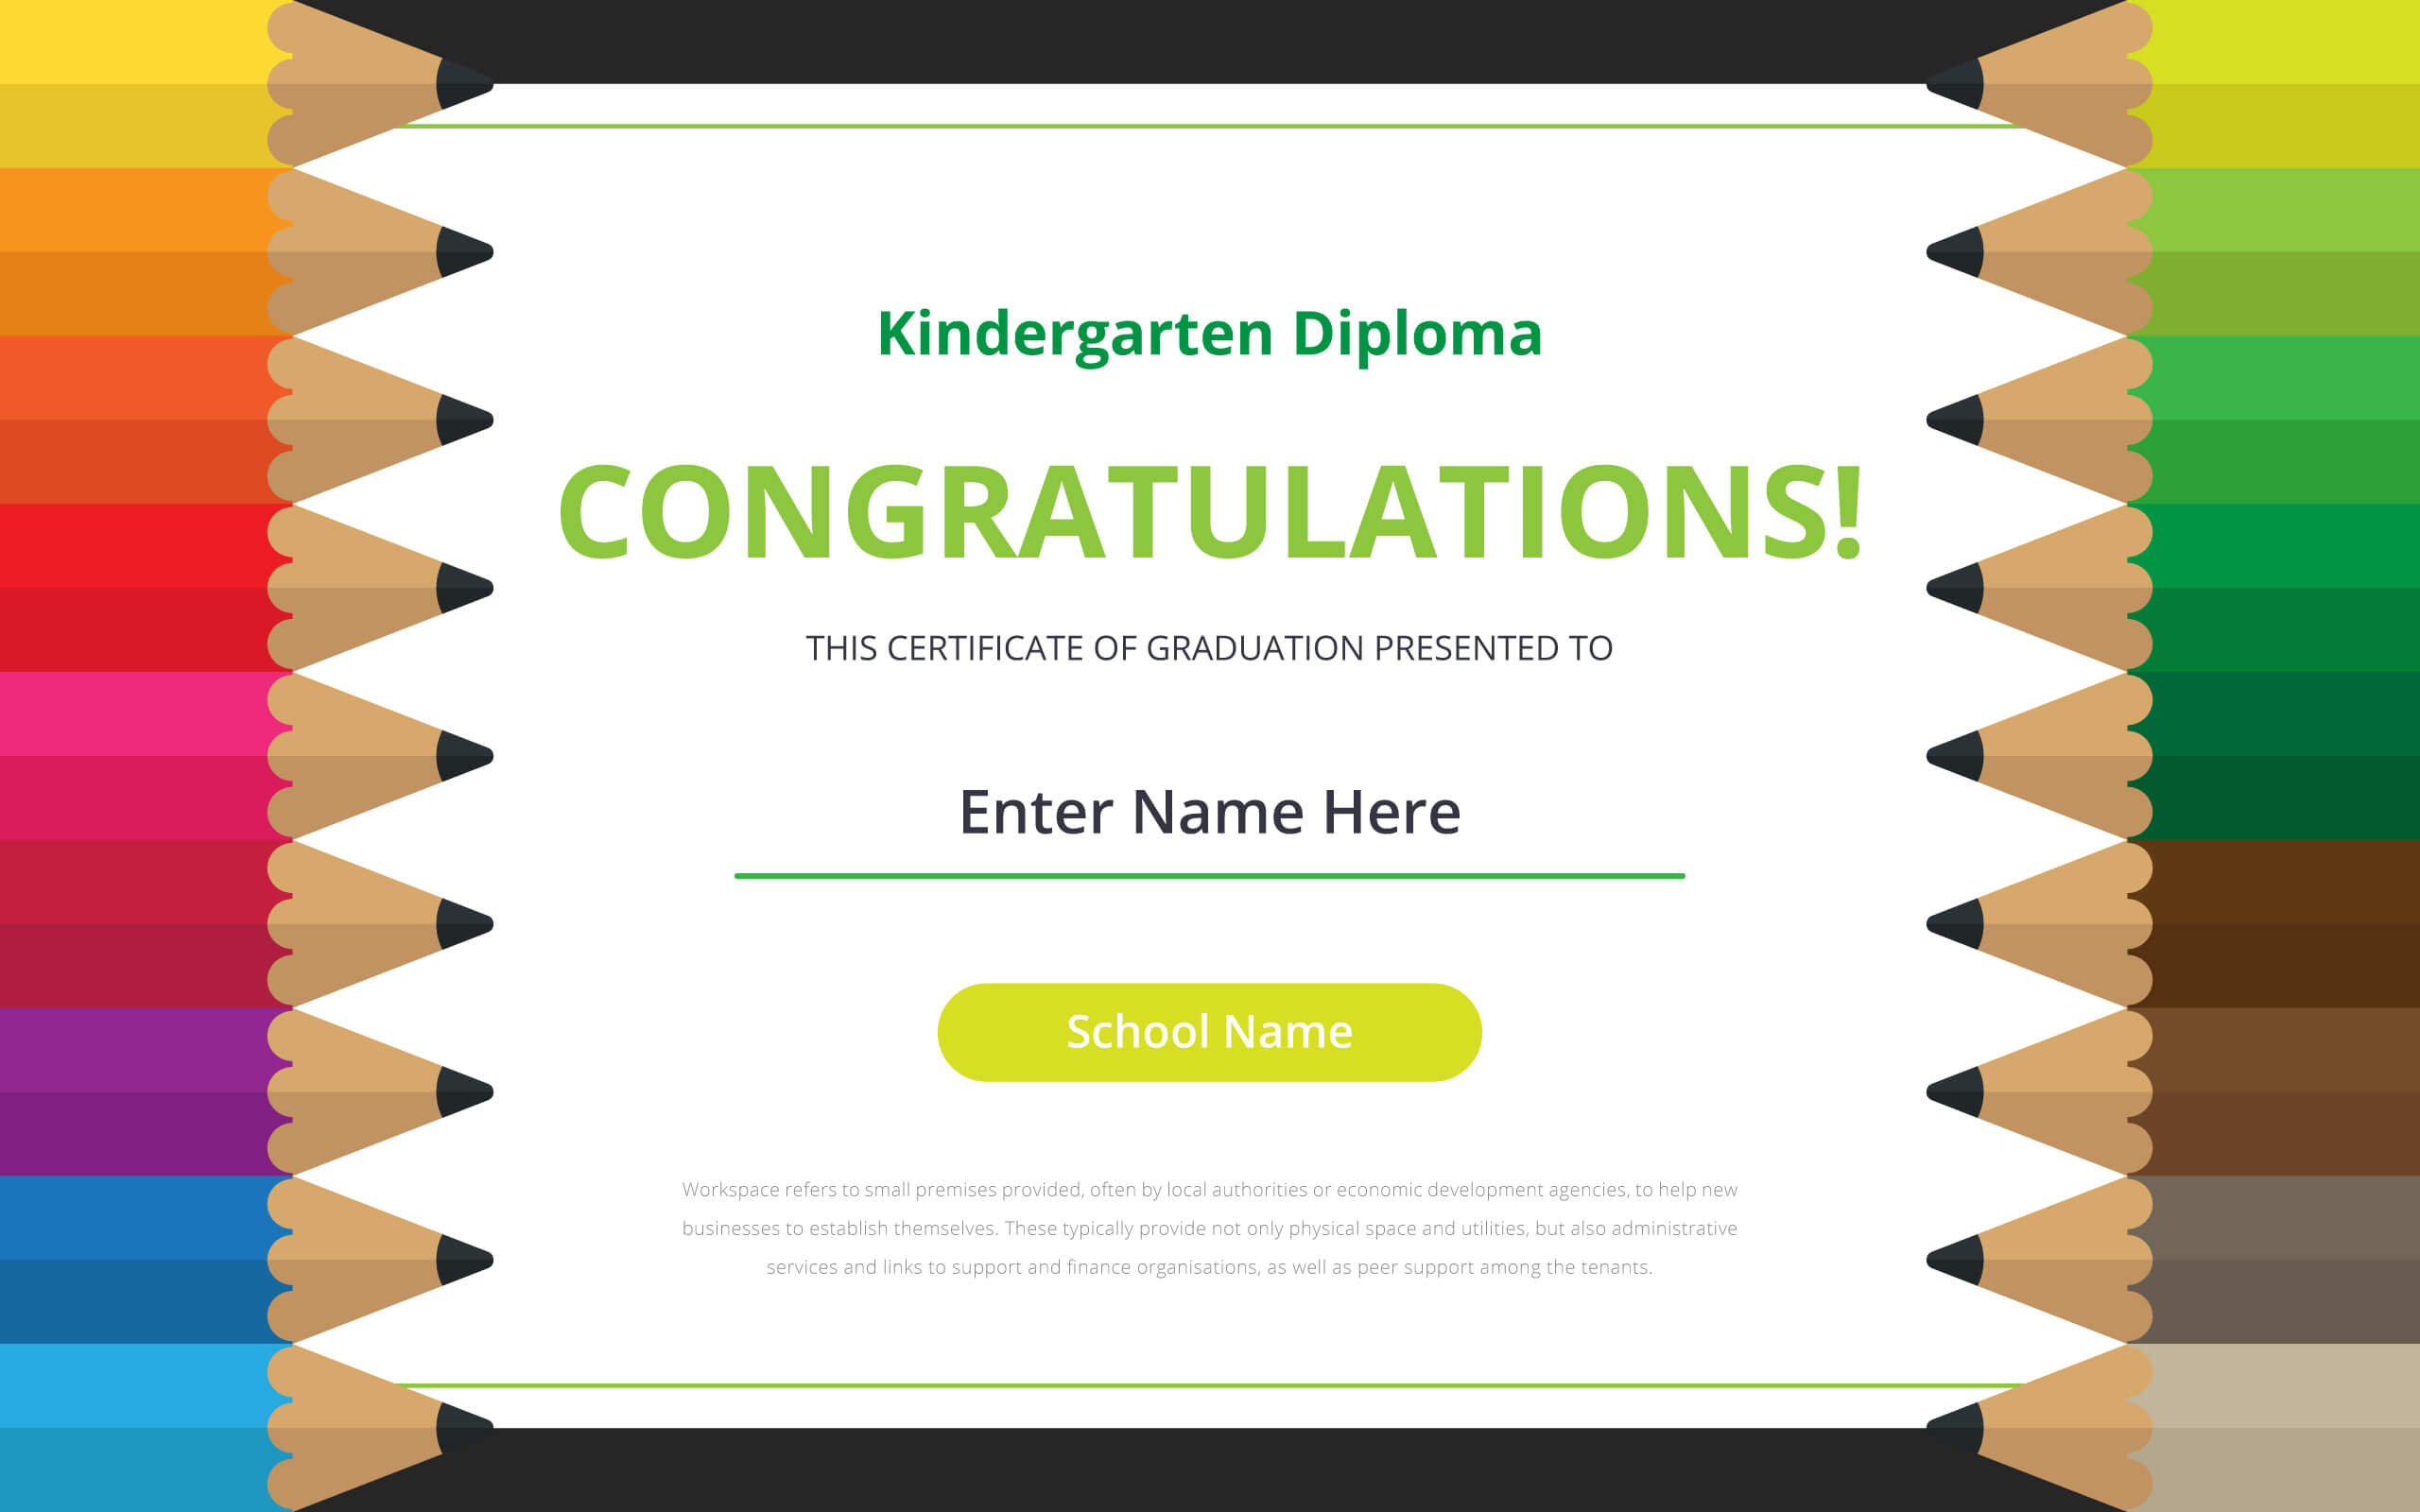 Kindergarten Diploma Certificate Template – Download Free Throughout Small Certificate Template